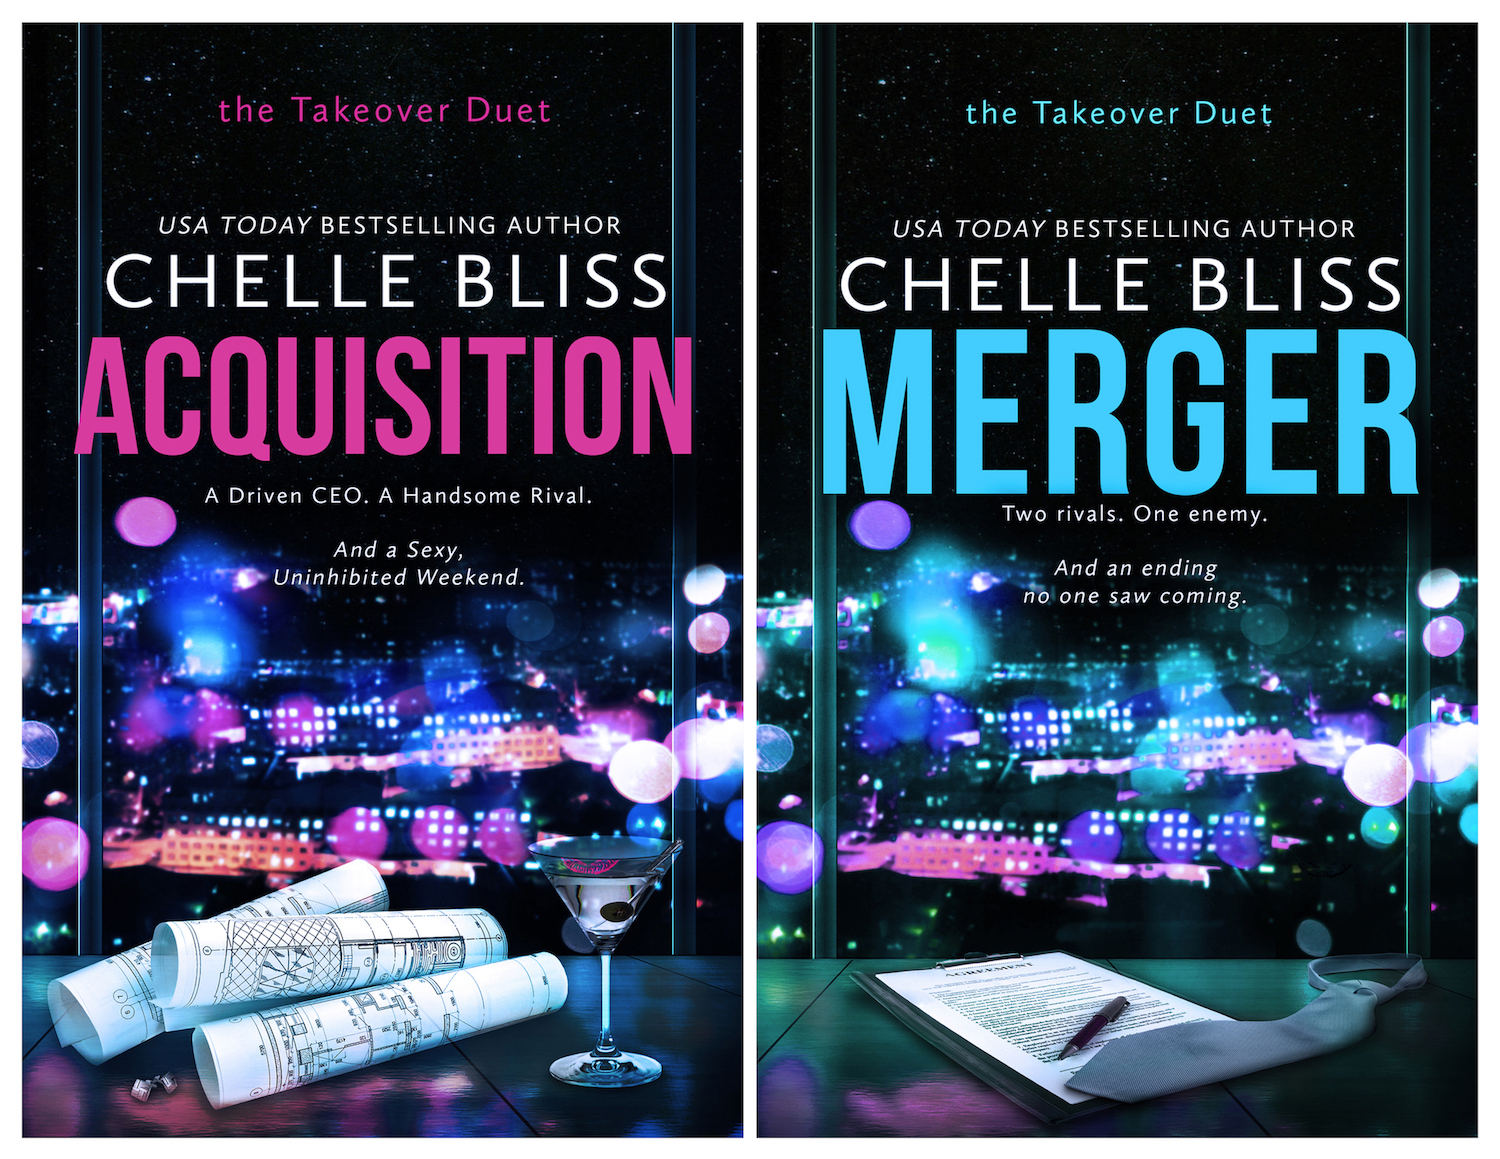 The Takeover Duet by Chelle Bliss